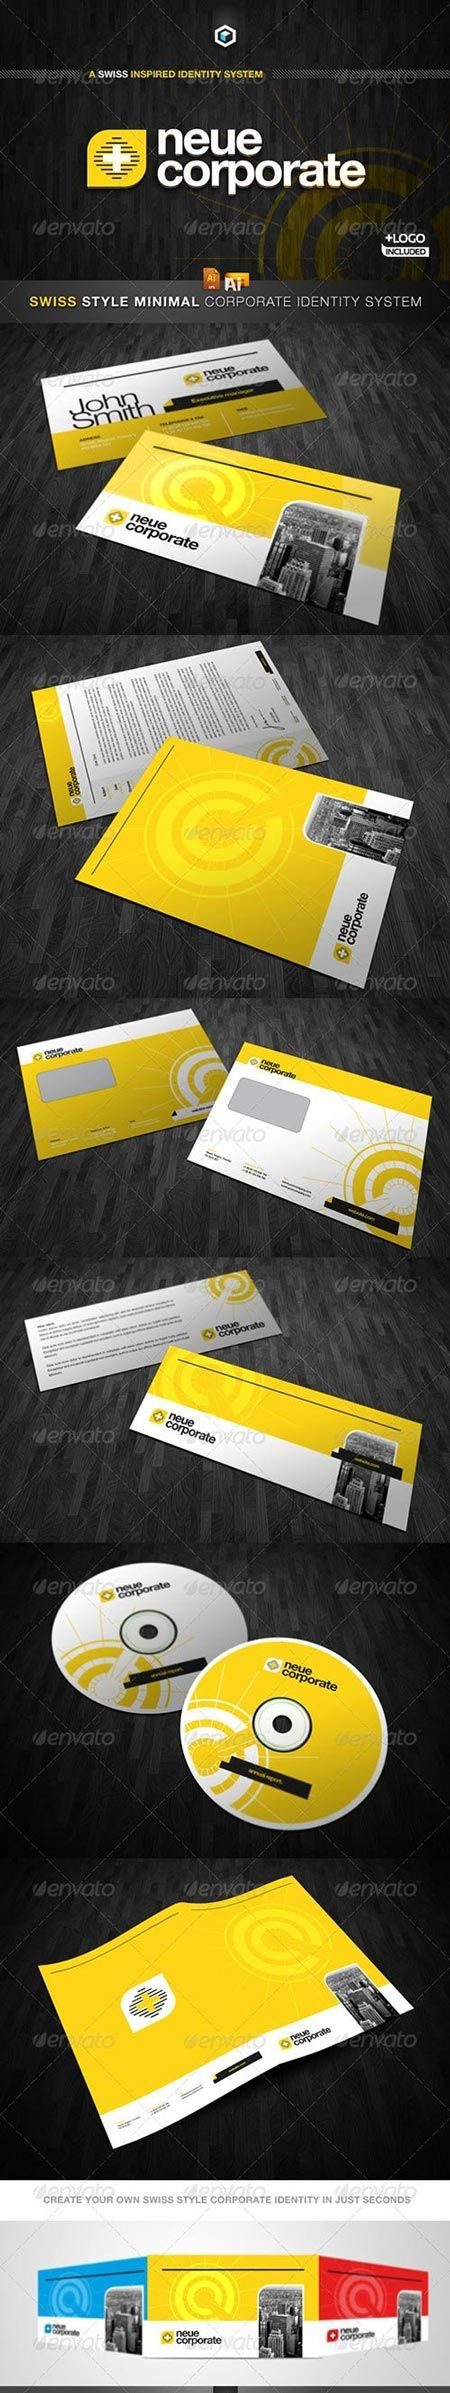 GraphicRiver RW Swiss Style Modern Corporate Identity And Logo 2331247